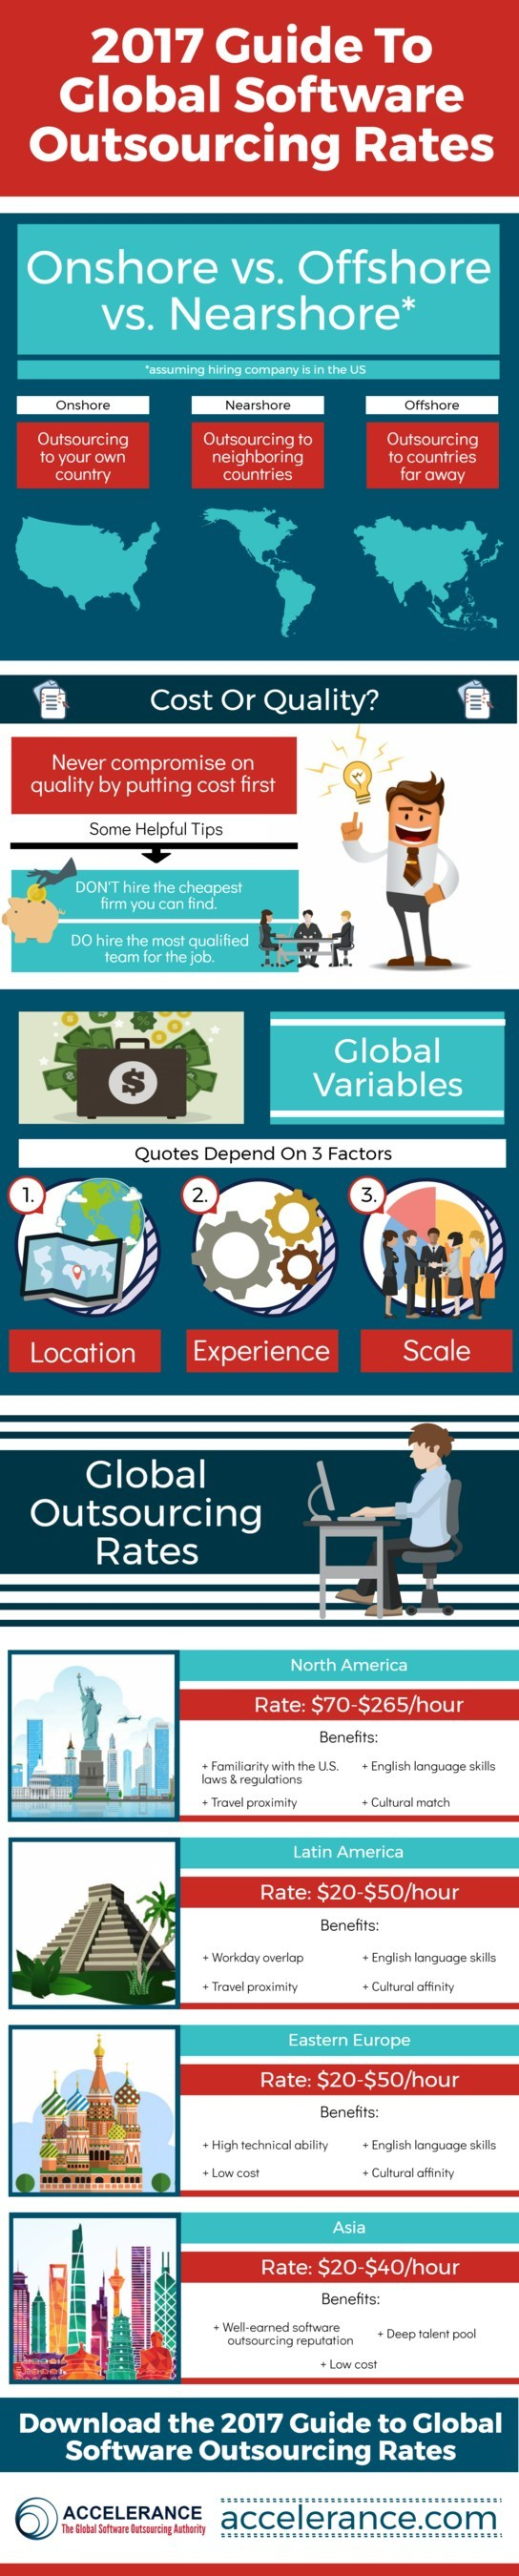 """Infographic highlights Accelerance's new report, """"2017 Guide to Global Software Outsourcing Rates."""" The infographic and complimentary guide present the competitive global rates an enterprise or chief technology officer (CTO) can expect to pay when outsourcing to various regions."""